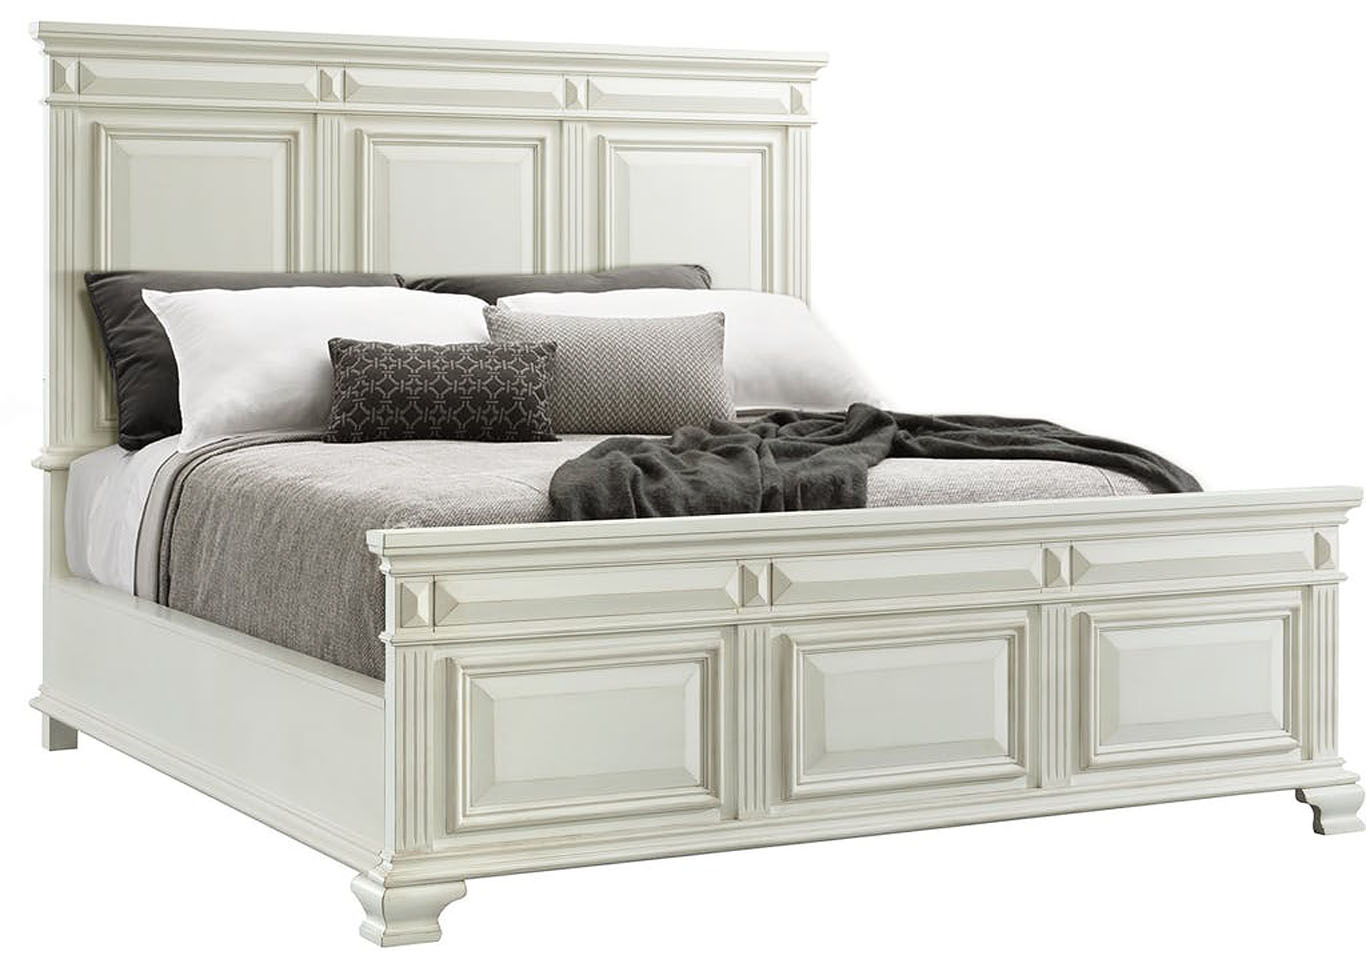 Calloway White Panel Bedroom Set - Eastern King,Instore